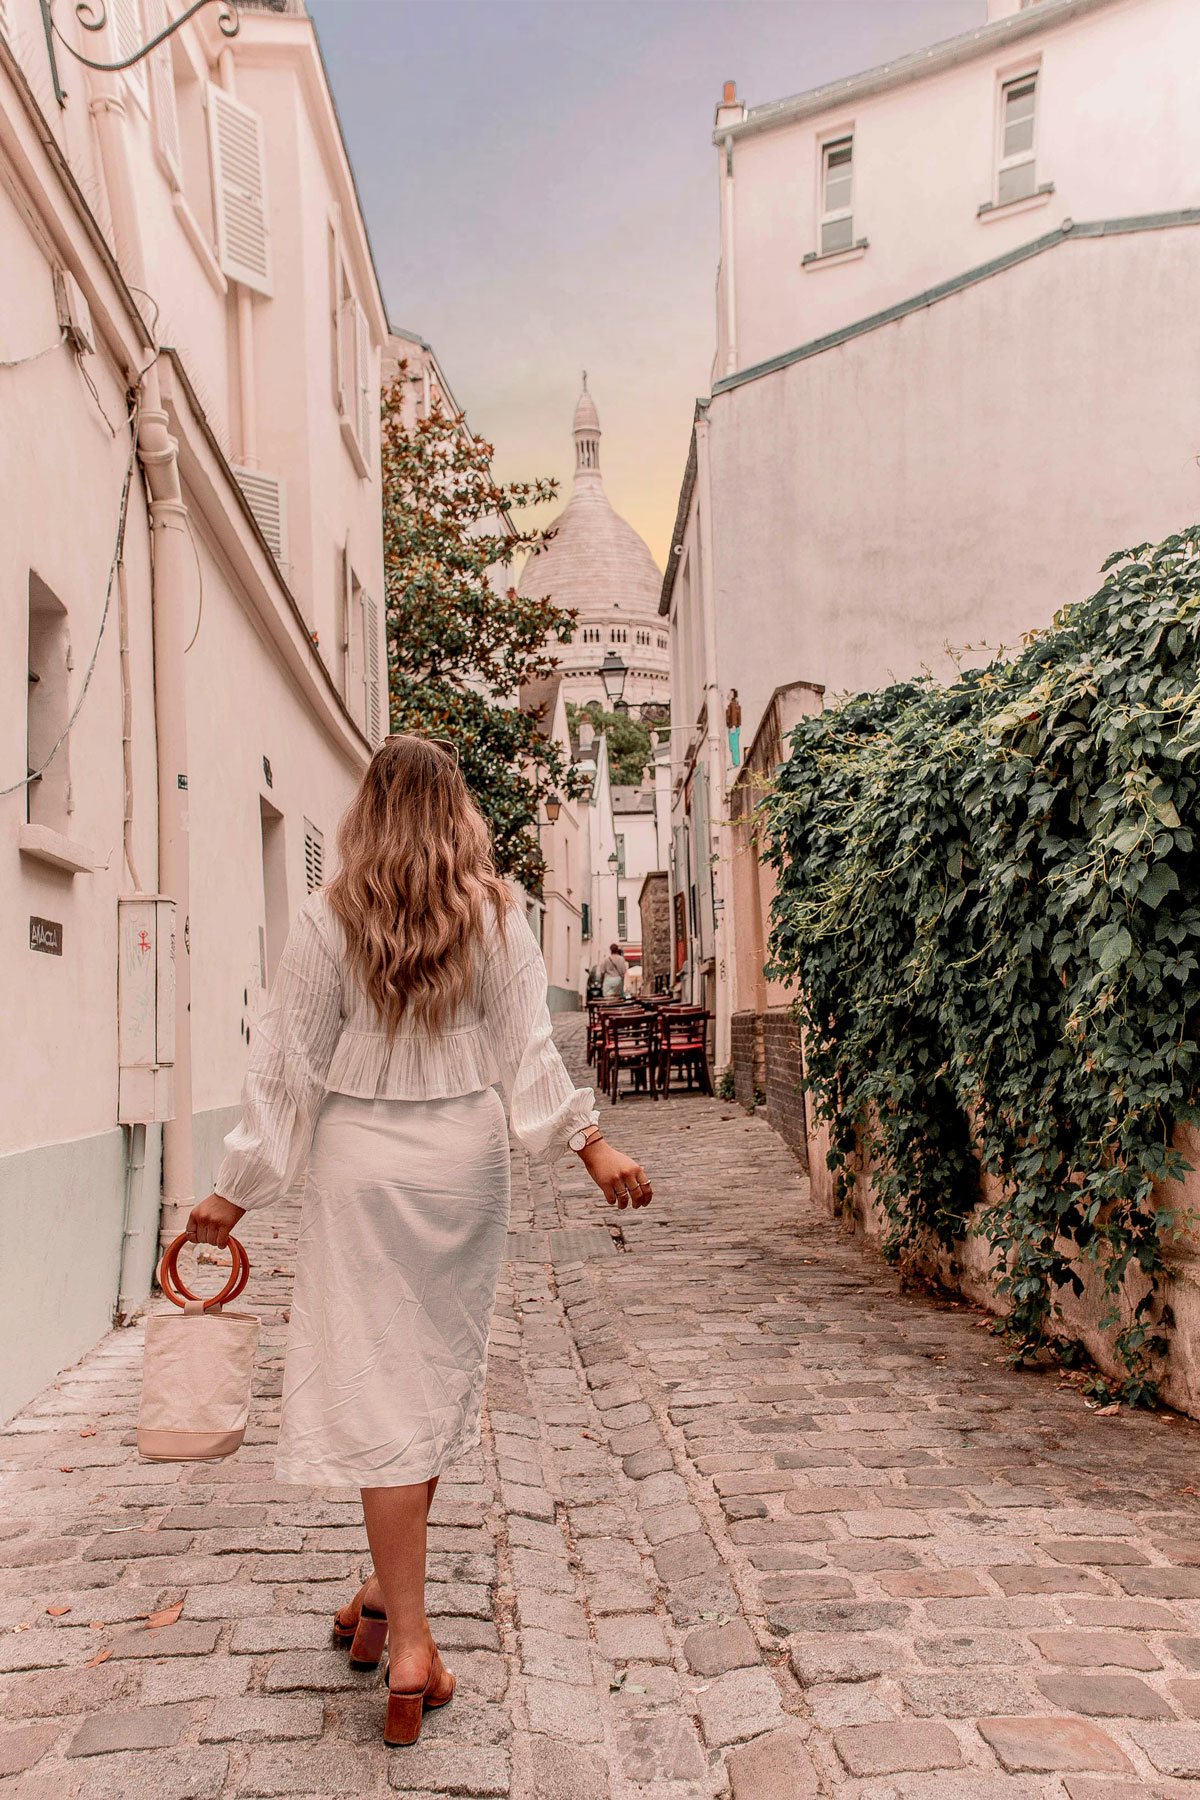 20-Best-Paris-Photography-Locations-Instagram-Spots--@kelseyinlondon-Kelsey-Heinrichs-Sacré-Cœur